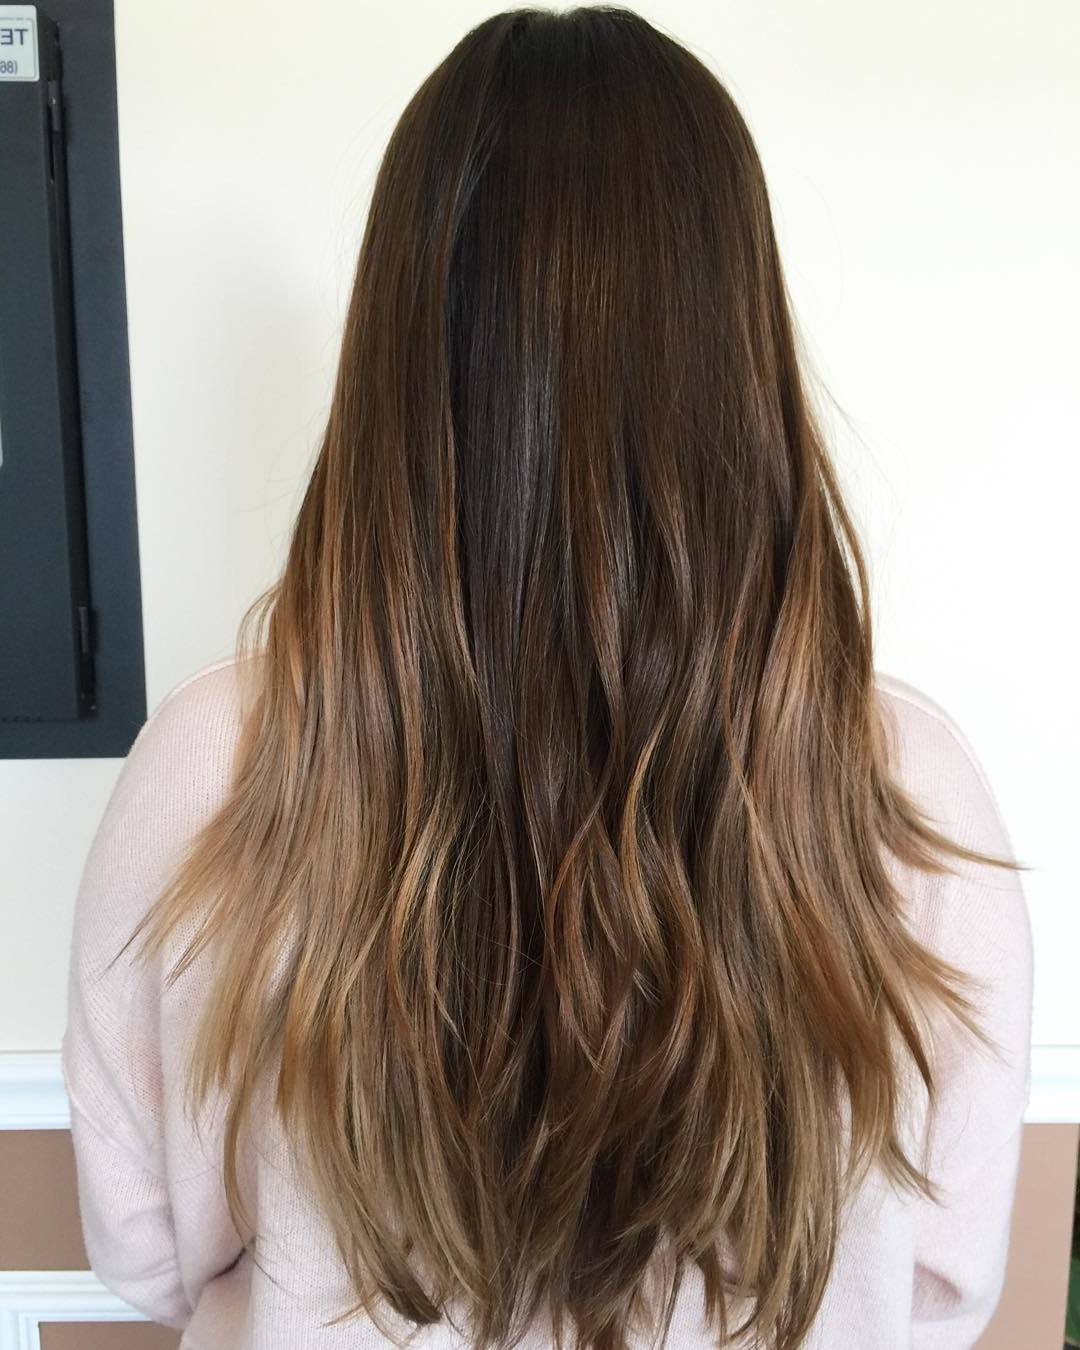 Ombre Look - Ombre blond braun